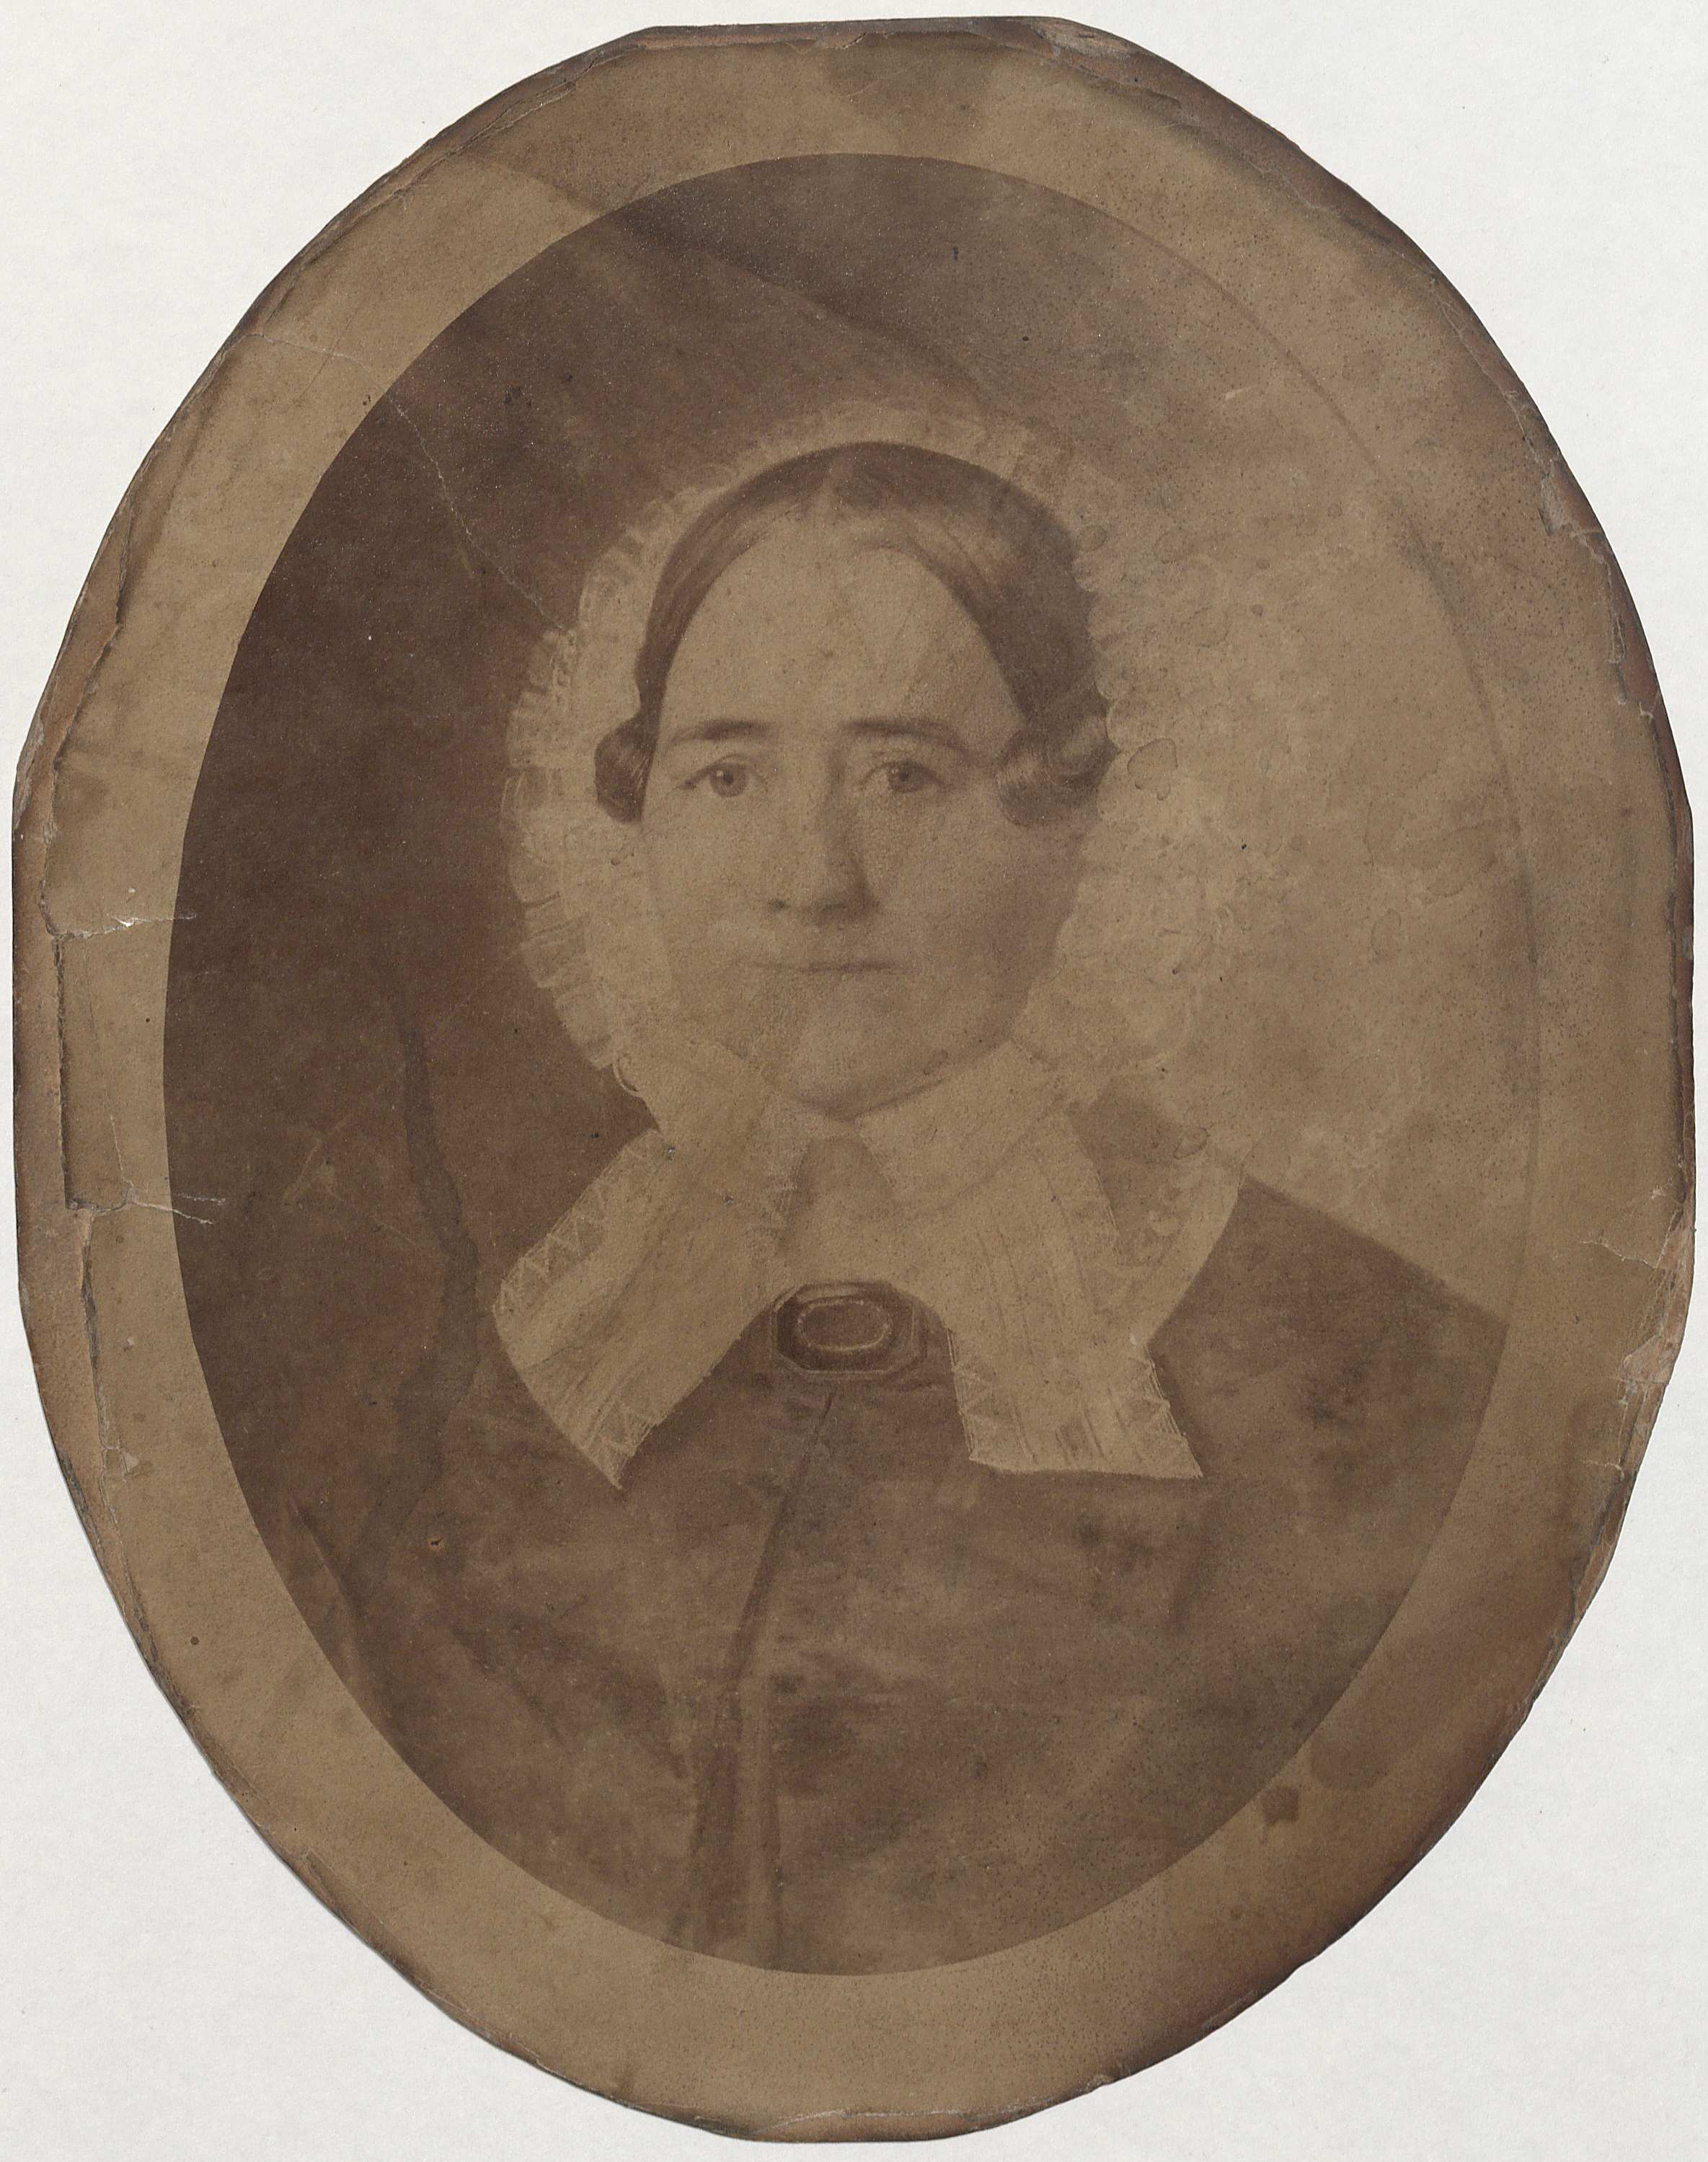 Portrait of Jane Hollins Nicholas Randolph, n.d. (MSS 5533-c. Additional Papers of the Randolph Family of Edgehill on deposit from Steven M. Moyer. Image by Petrina Jackson)